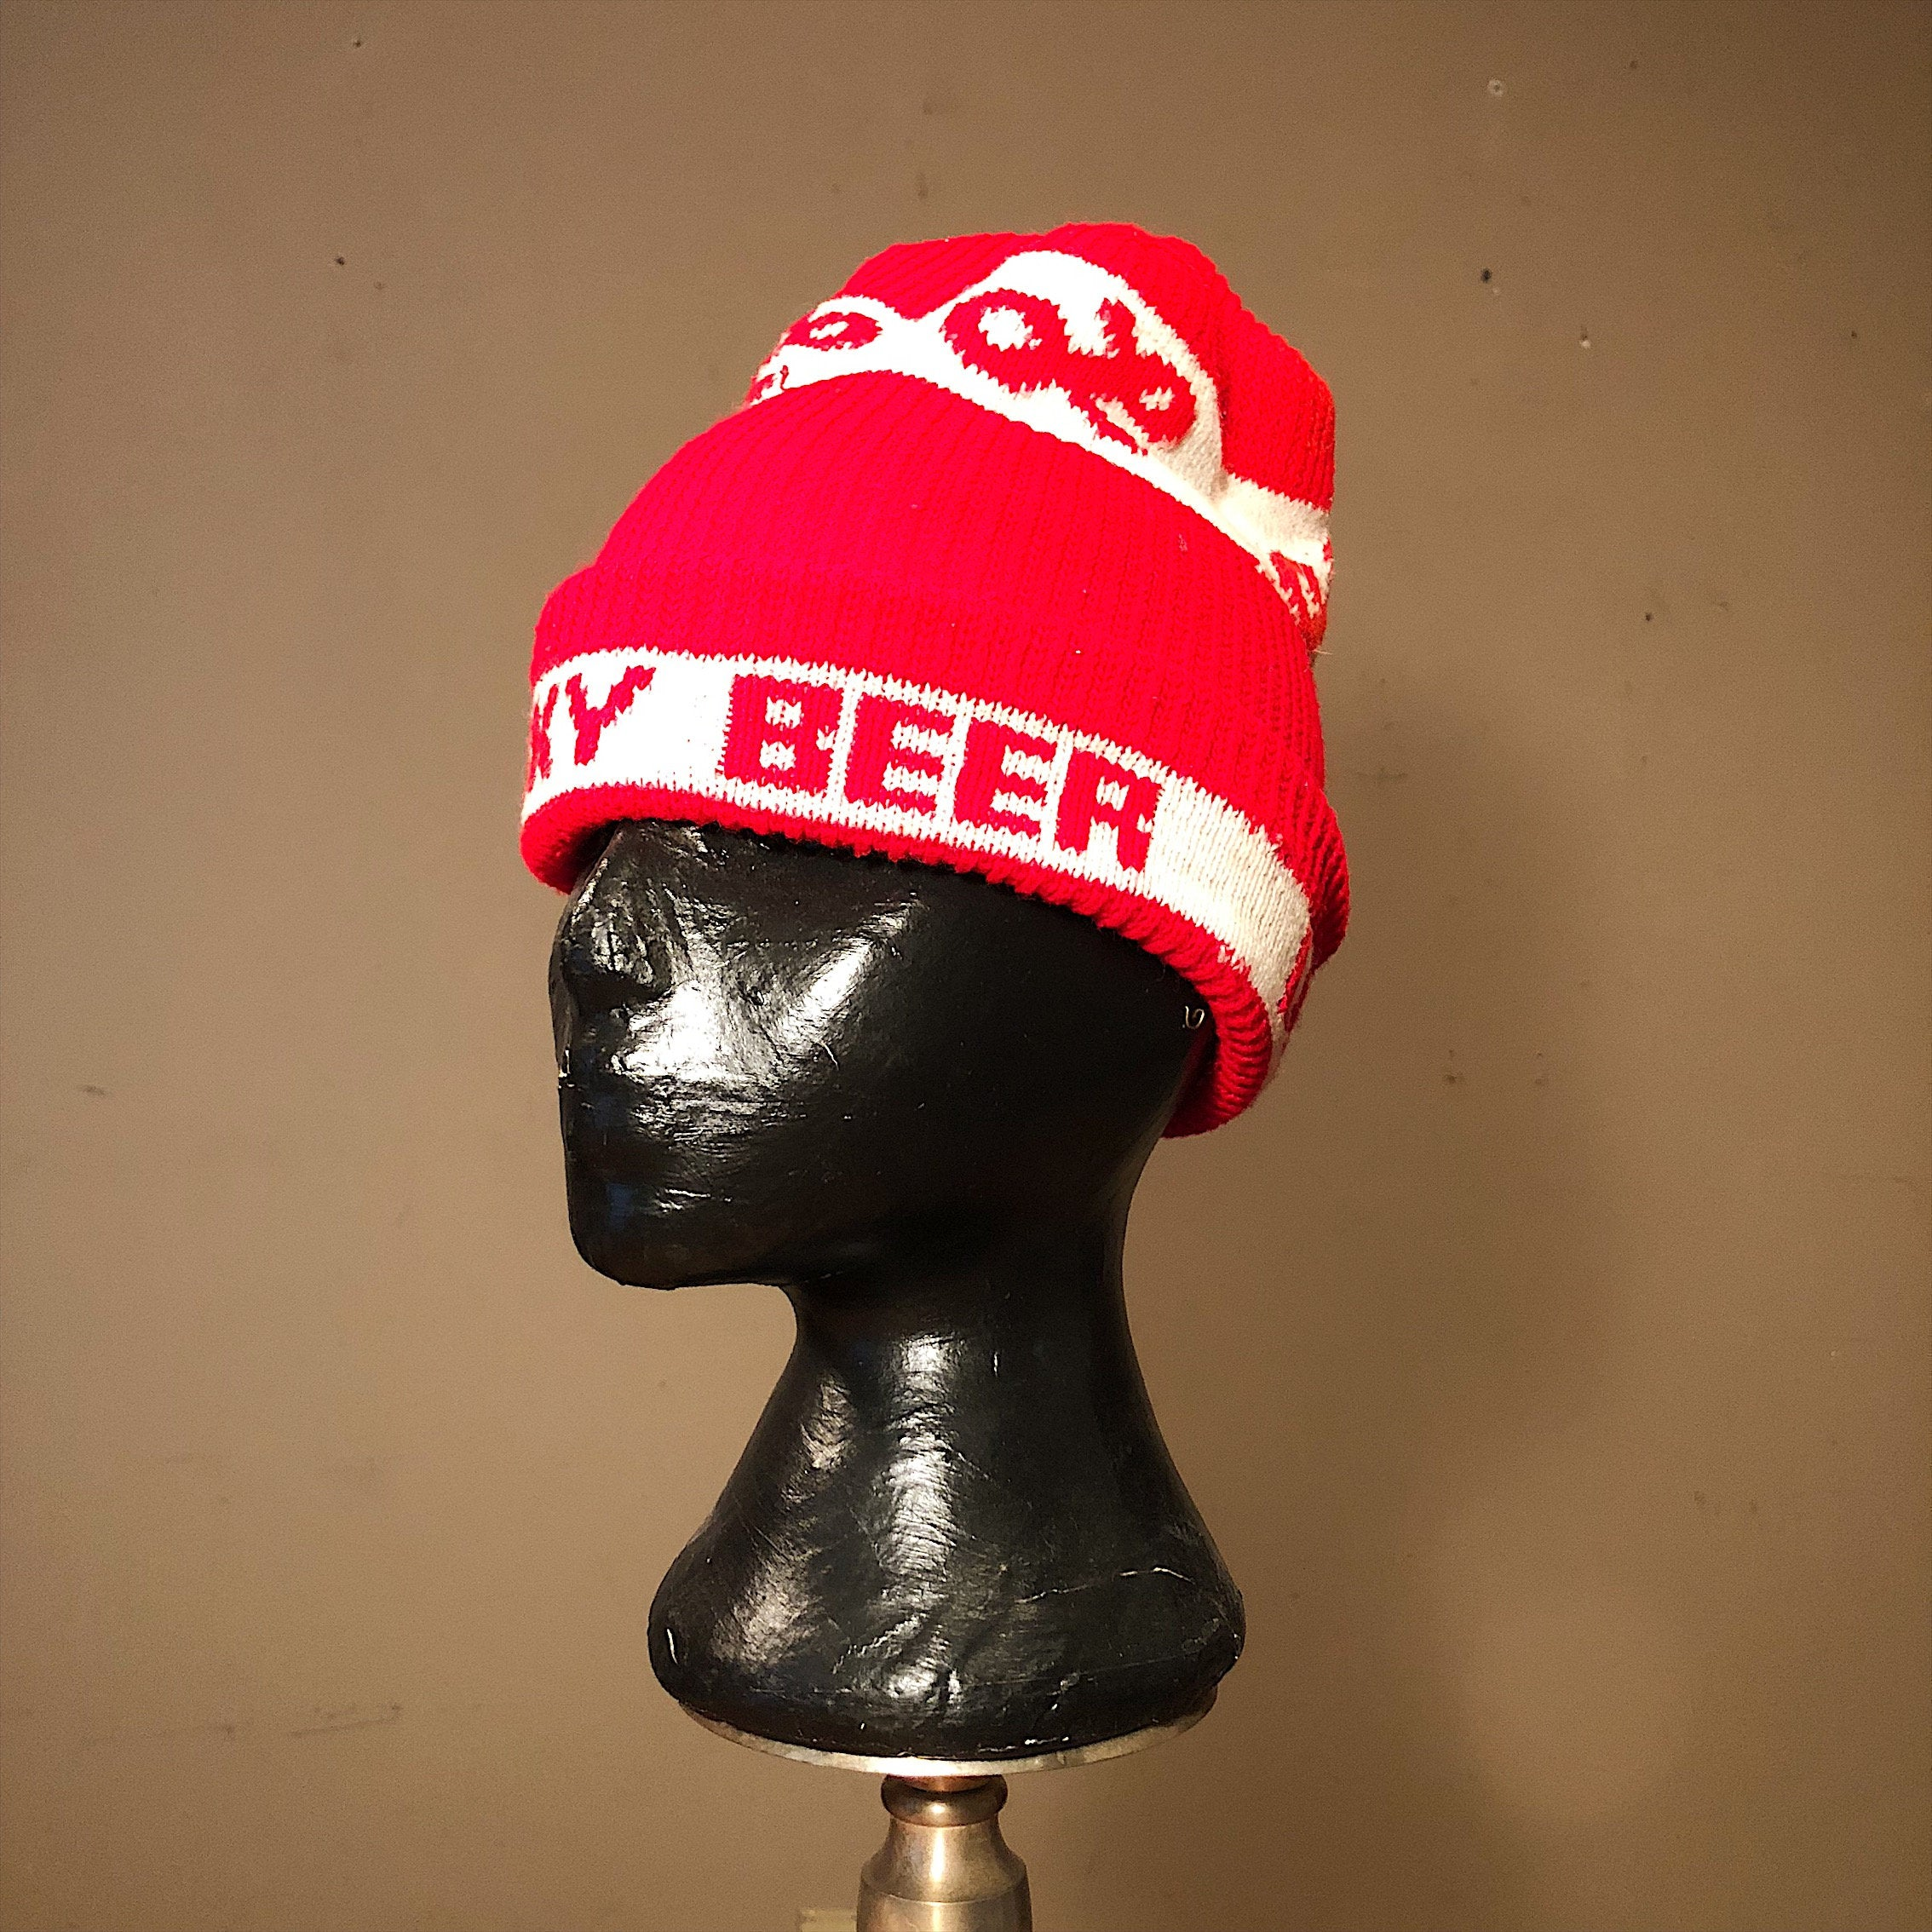 Vintage Lucky Beer Stocking Cap - 1970s? - Hipster Cap - Lucky Lager Stocking Cap - Vintage Stocking Caps - Beanie Caps - Hipster Caps